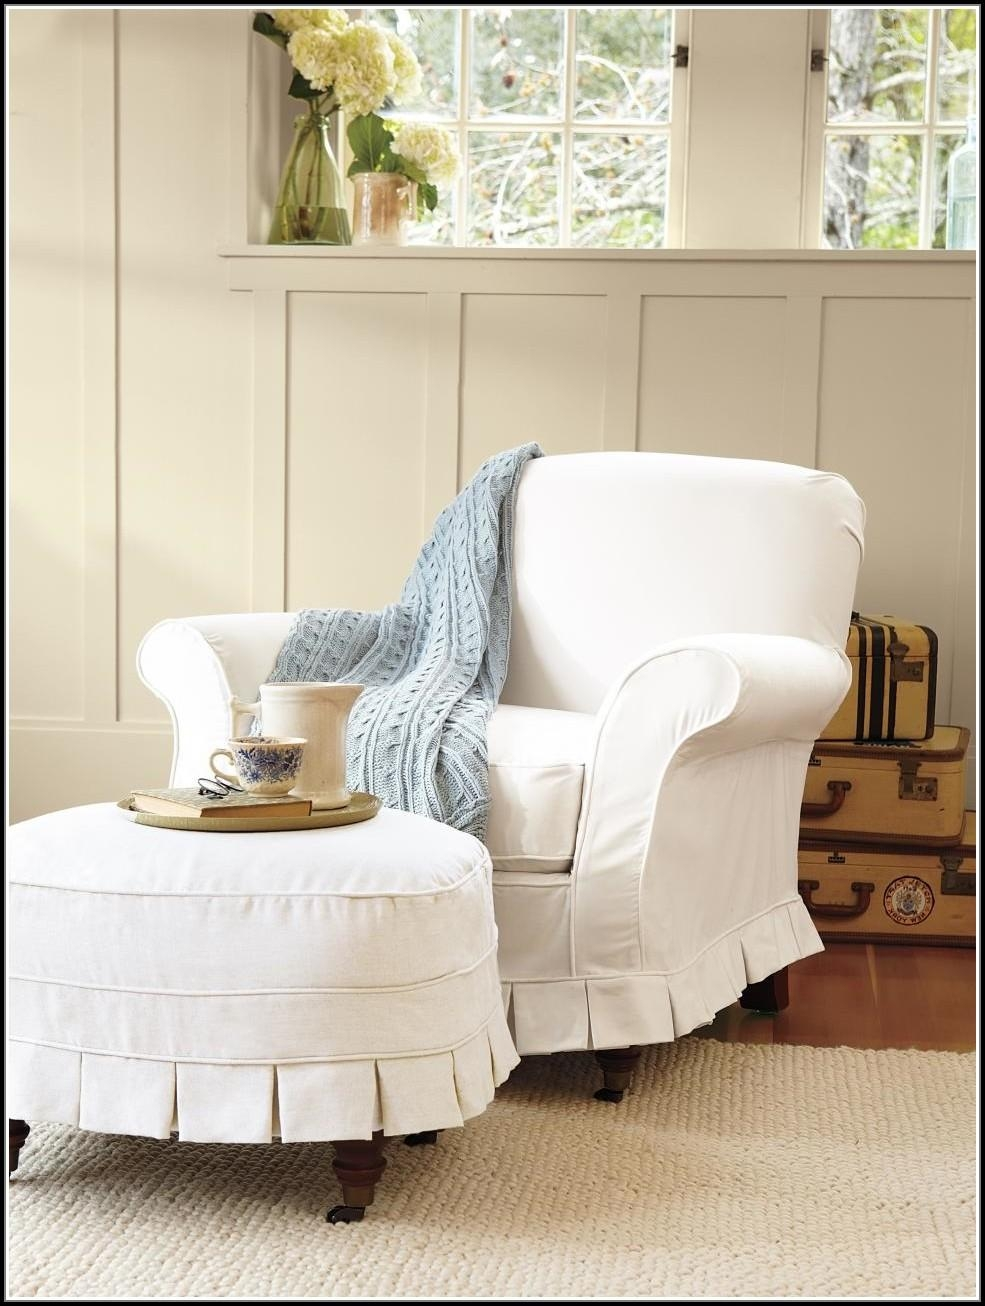 Parson Chair Slipcovers Pottery Barn – Chair : Home Furniture Regarding Pottery Barn Chair Slipcovers (View 2 of 20)